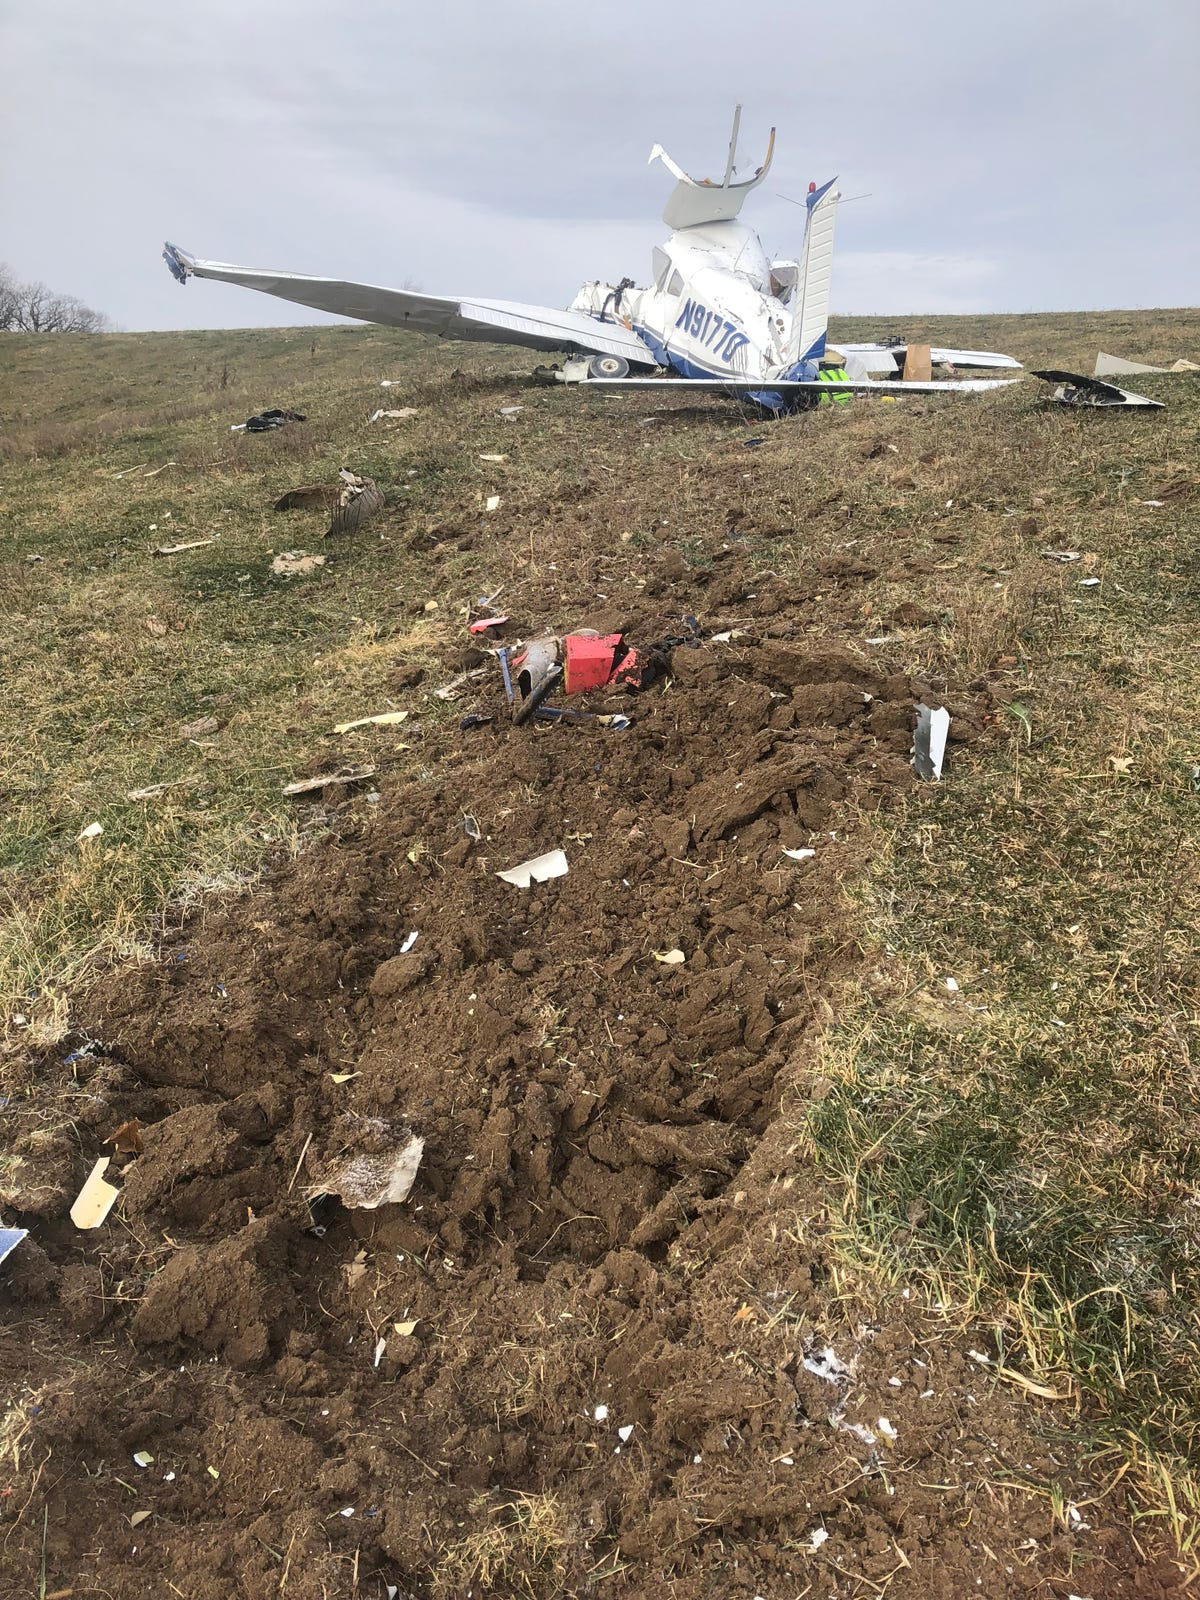 Iowa plane crash victims included 3 who were related